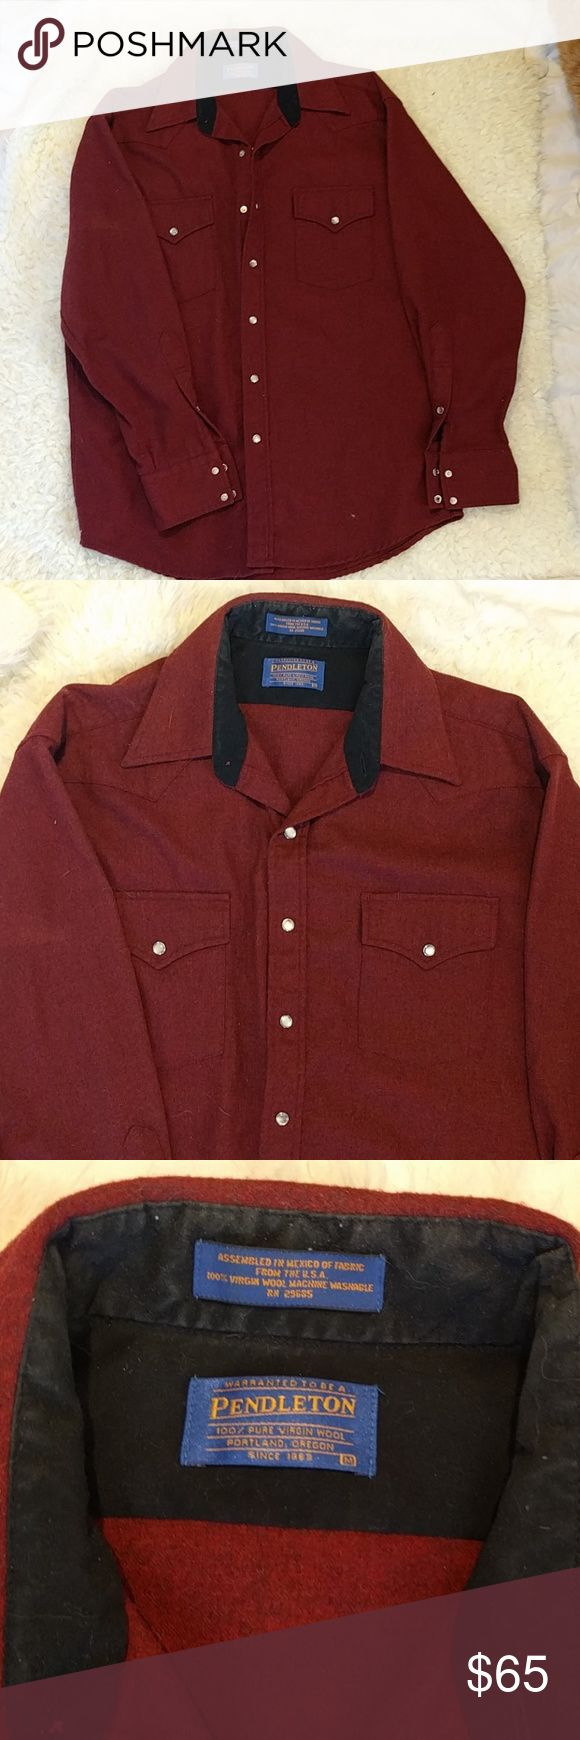 Pendleton wool Western shirt maroon red Chest measures 23 inches armpit to armpit. 100% pure virgin wool. Snaps. This is in good condition. There are a few small holes from moths Pendleton Shirts Casual Button Down Shirts